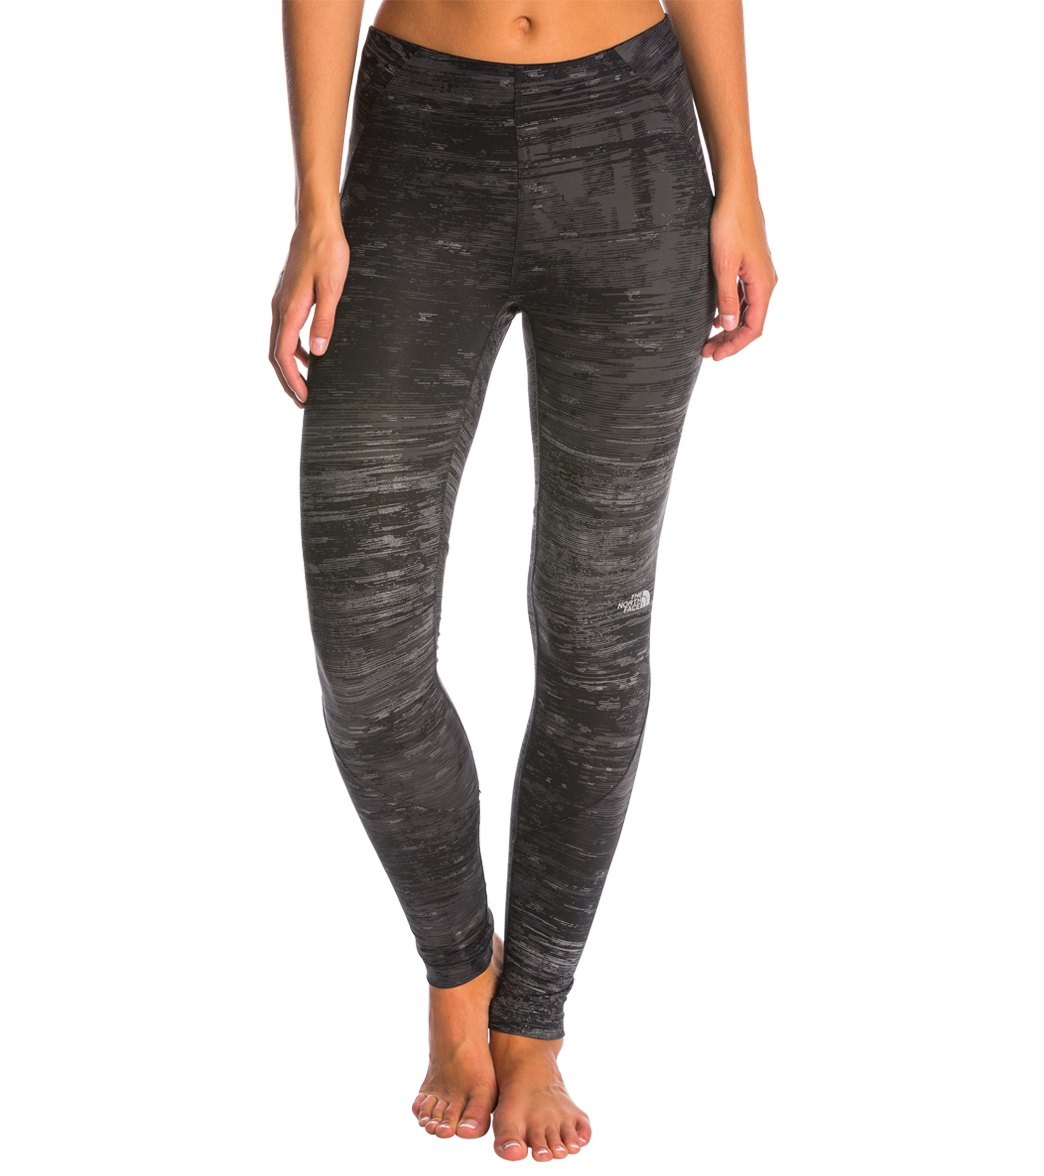 6d3a25930ca1a The North Face Women's Motus Tight II at SwimOutlet.com - Free ...